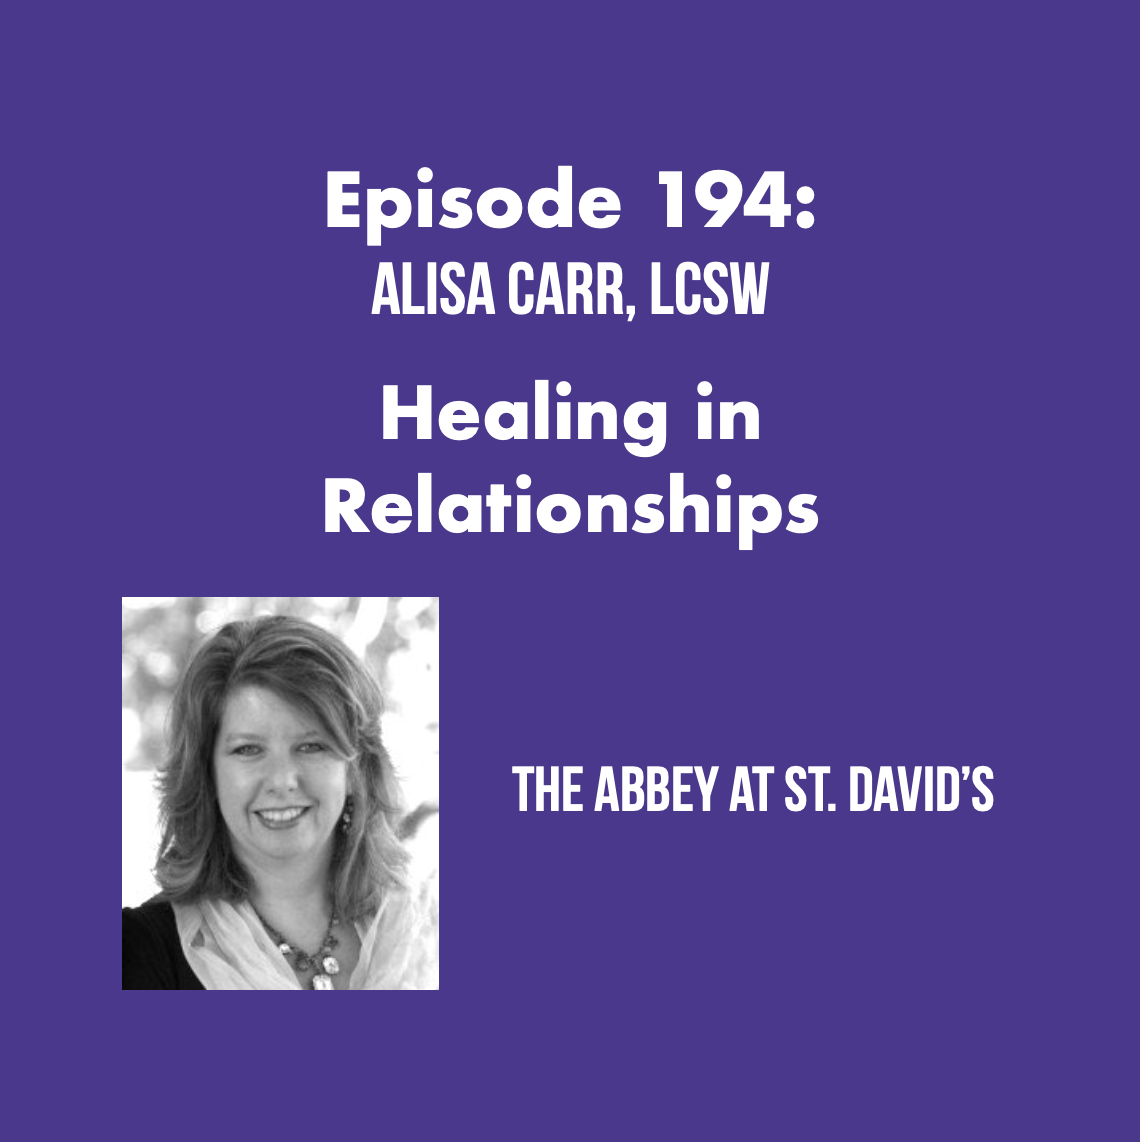 Episode 194: Healing in Relationships with Alisa Carr, LCSW